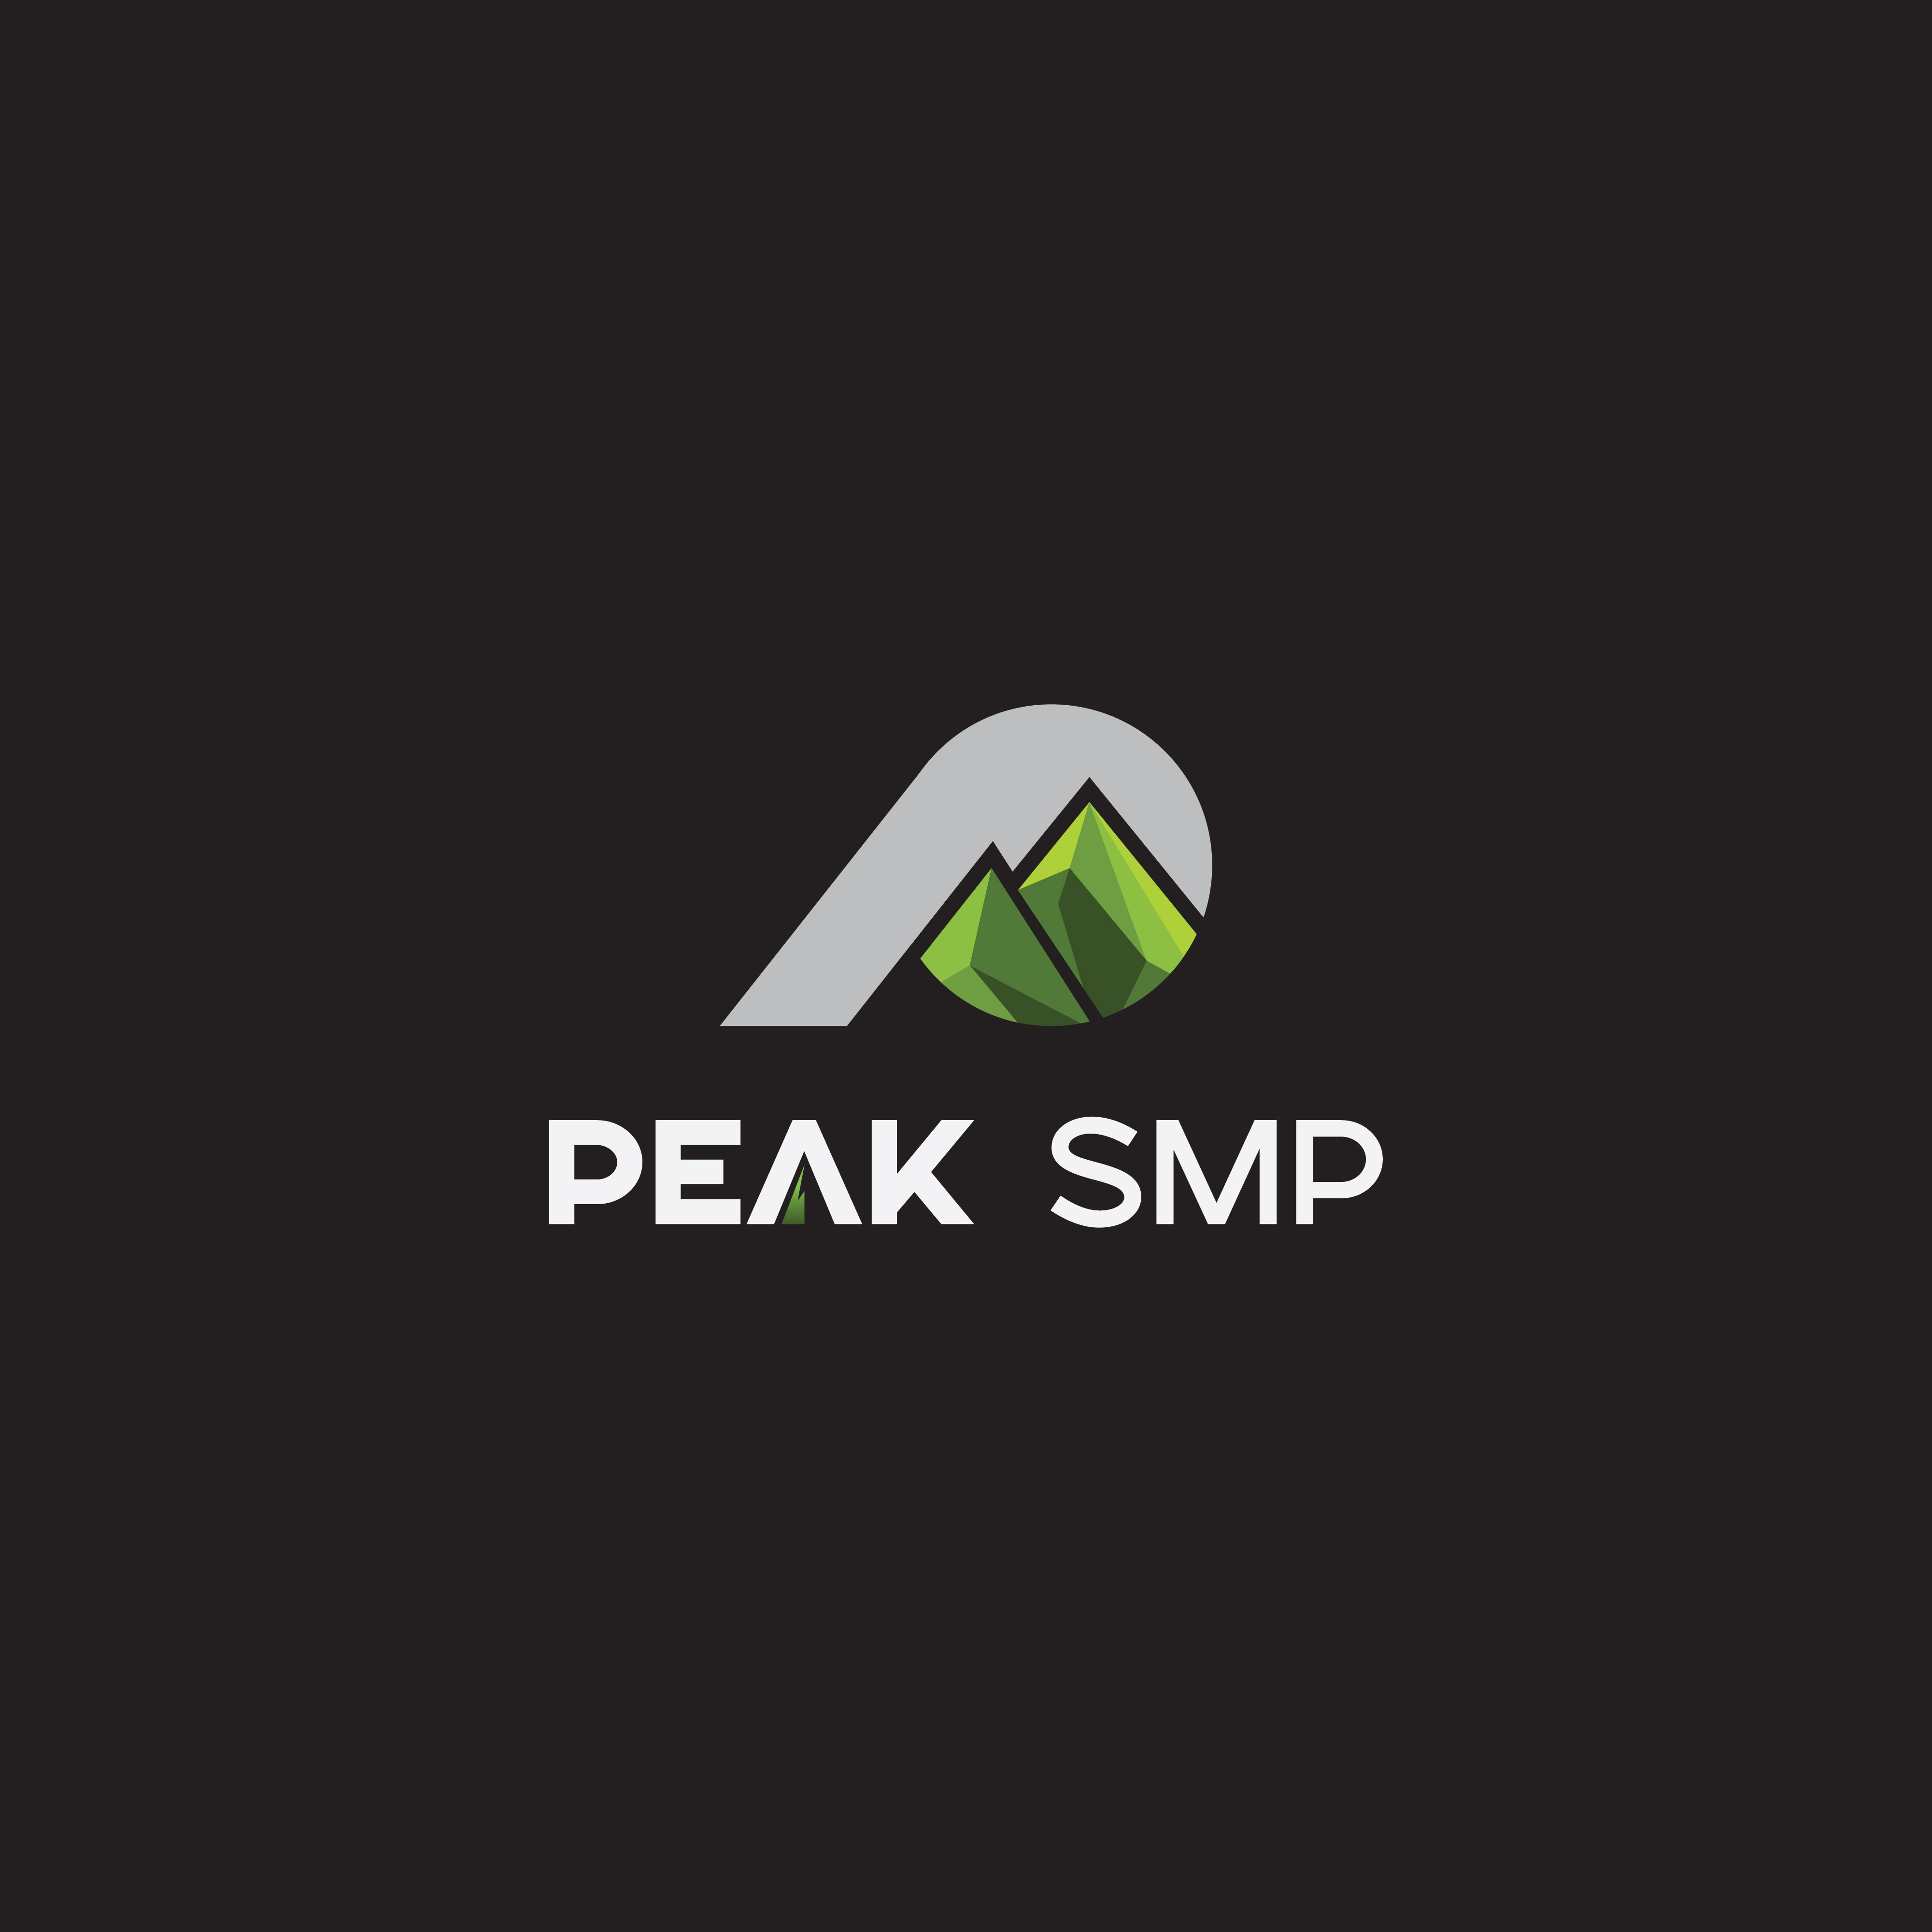 Lifestyle logo that evokes a feeling of transformation and a return to one's peak